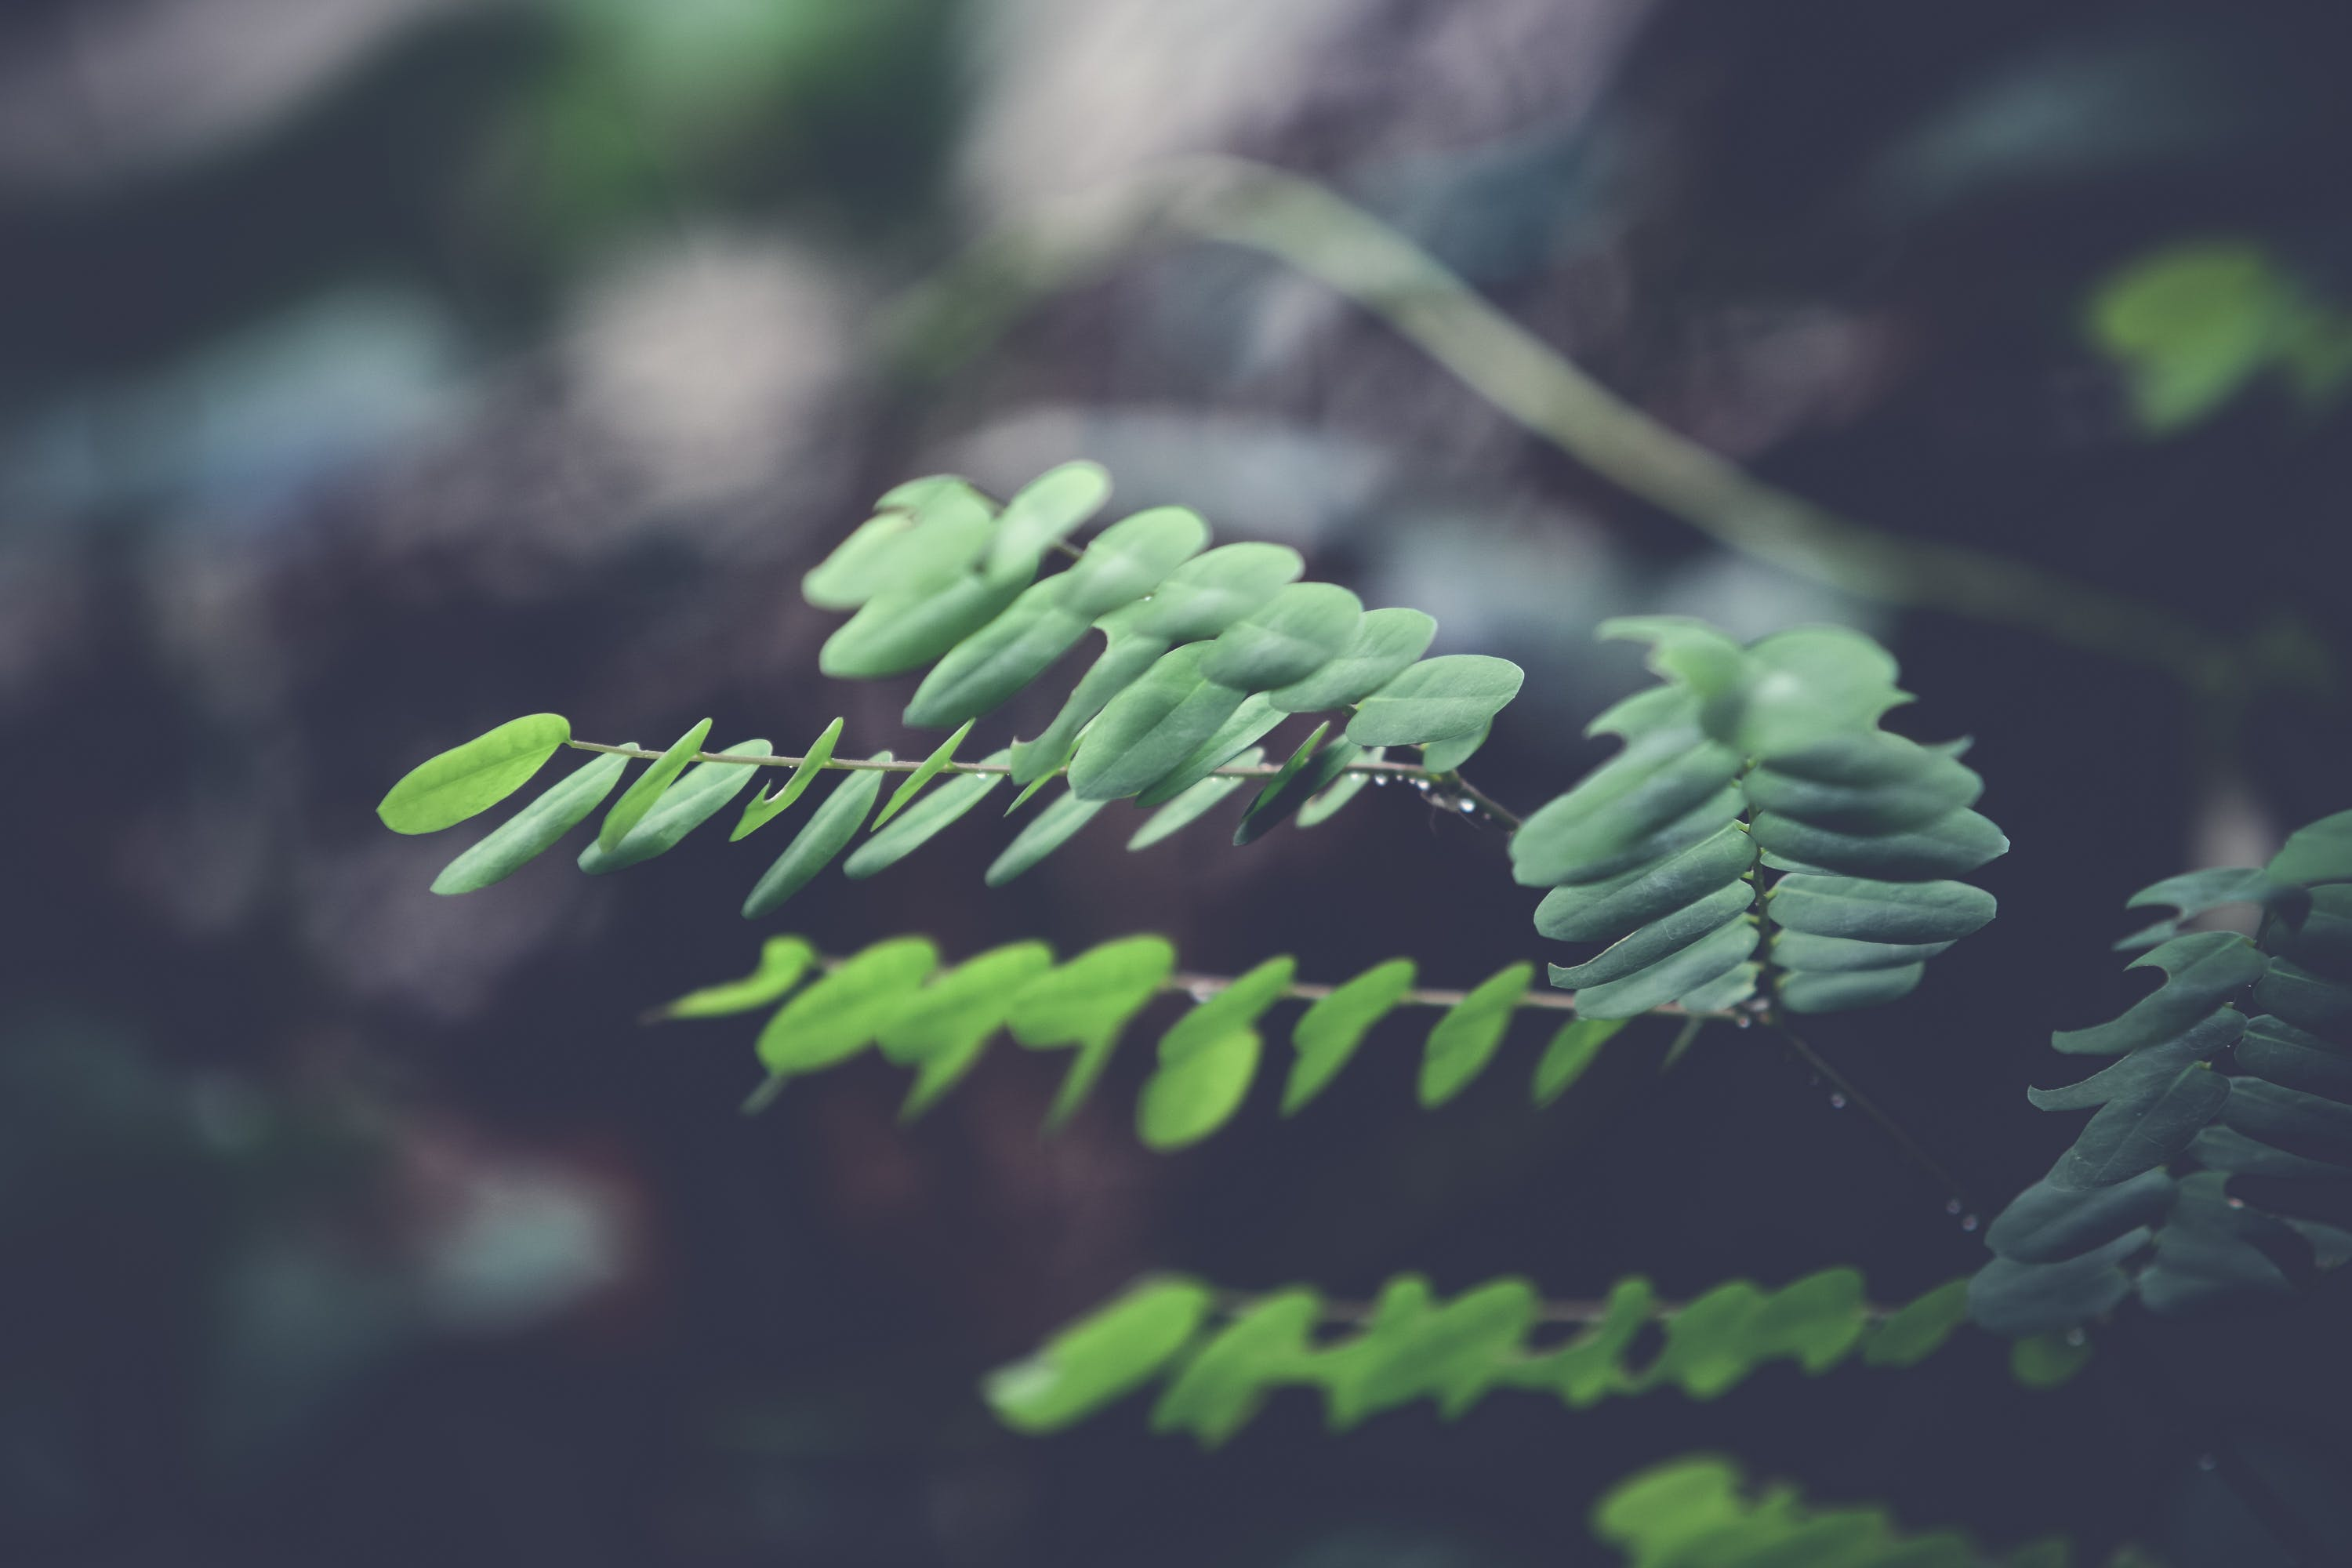 Free stock photo of light, garden, leaf, blur